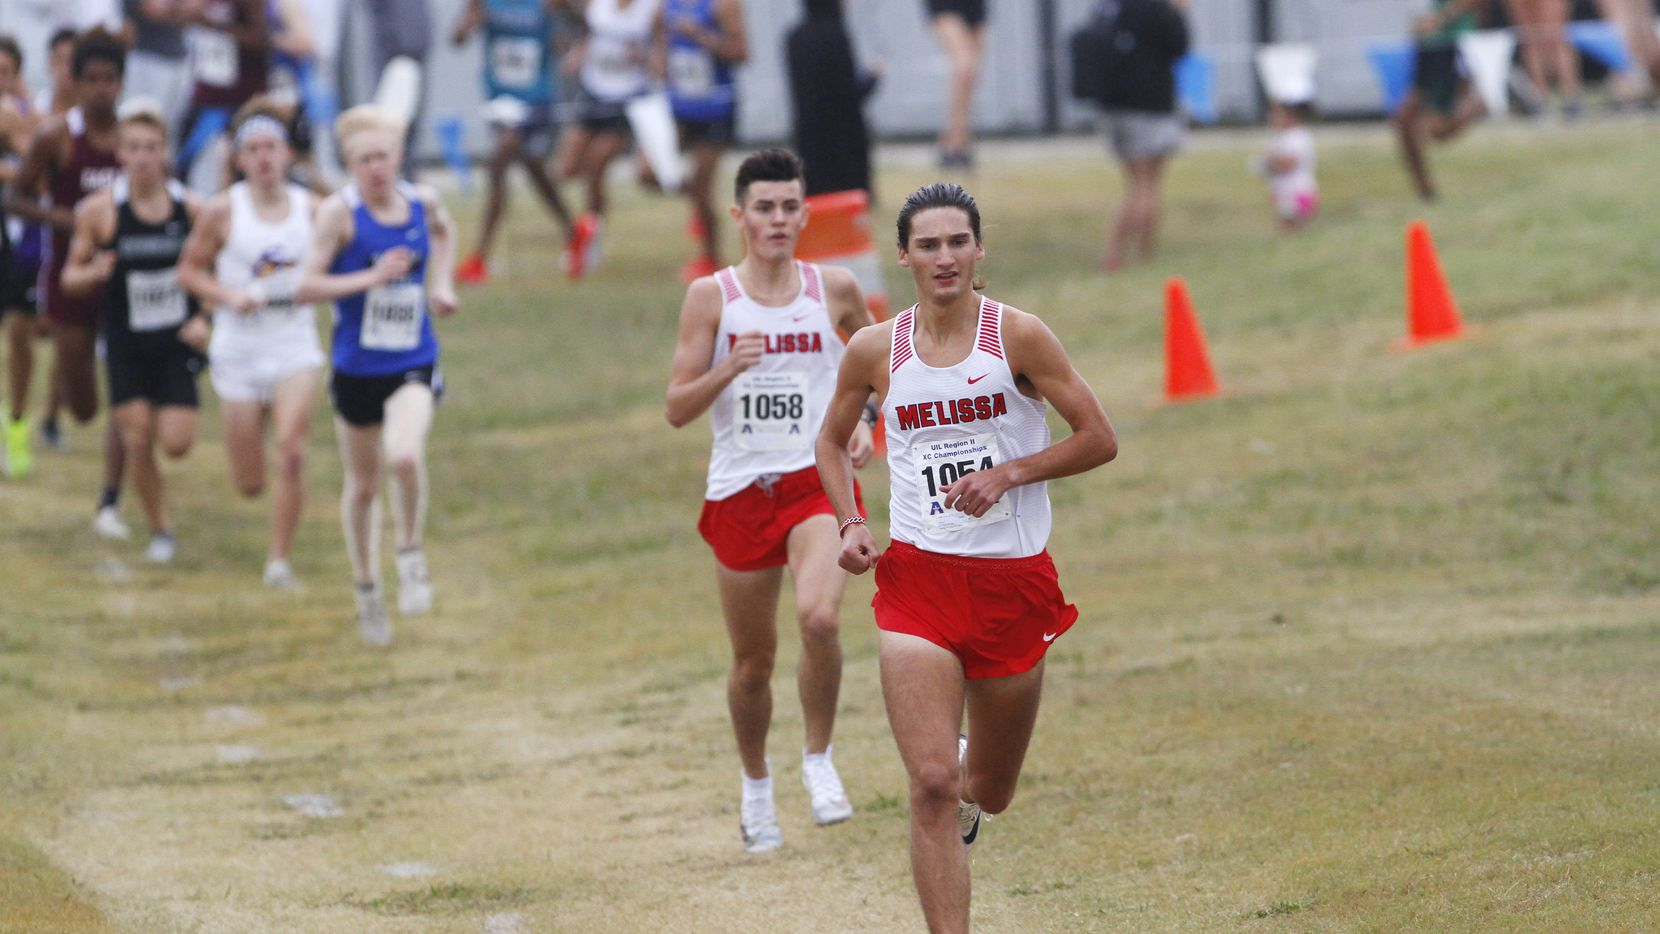 Melissa's Judson Greer (1054) leads the pack, with teammate Lucas Tauch (1058) right behind, during the Class 4A boys race at the Region II cross country meet at Jesse Owens Memorial Complex in Dallas on Tuesday. Greer finished first, and Tauch was second.